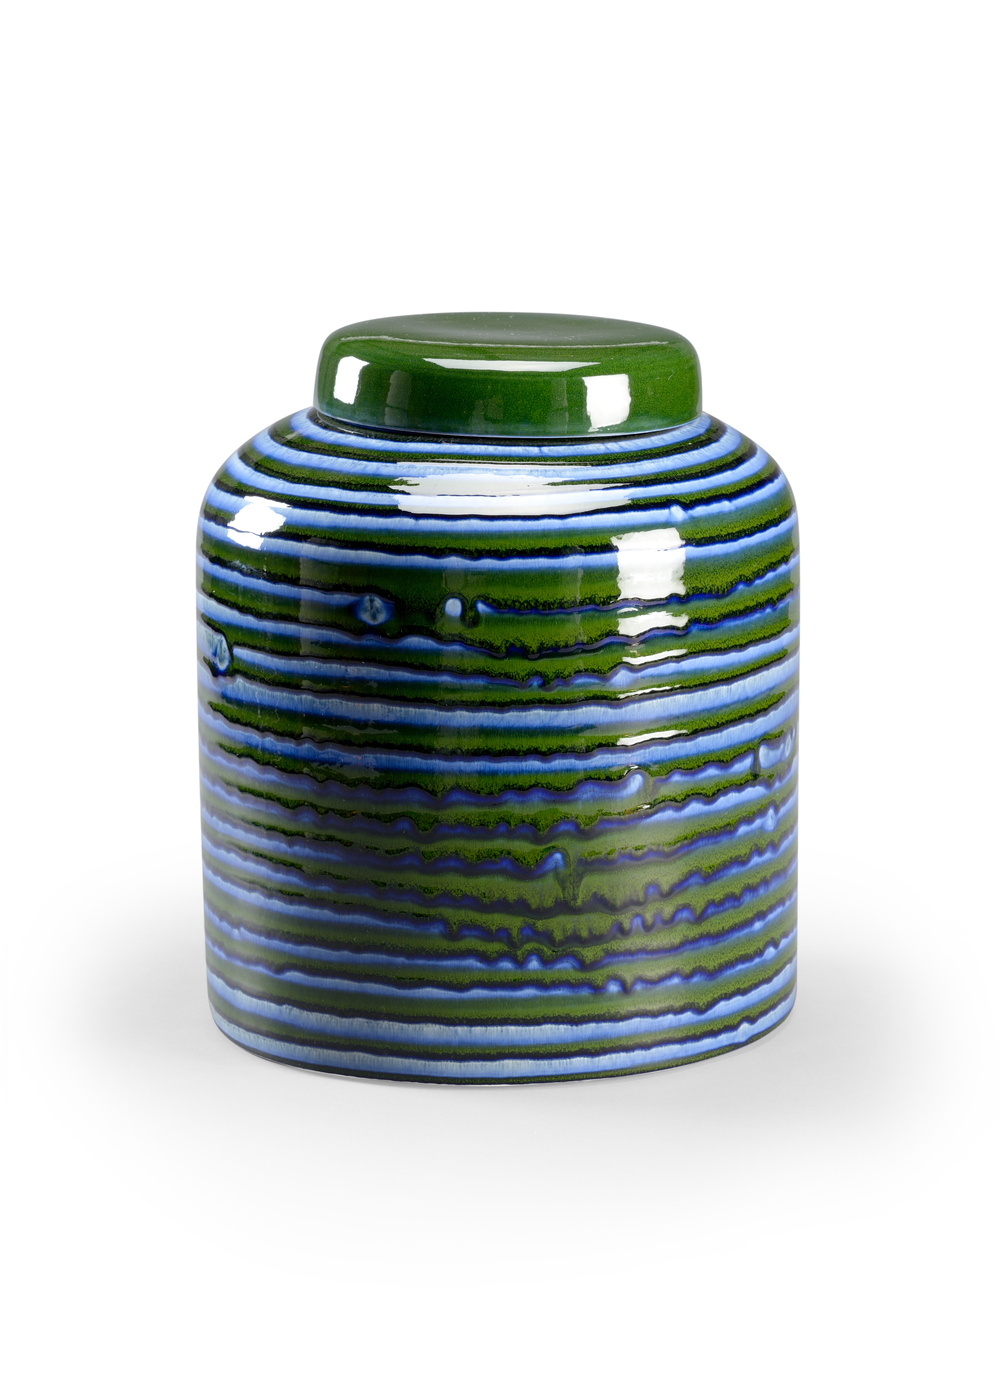 Chelsea House - Swirl Covered Jar